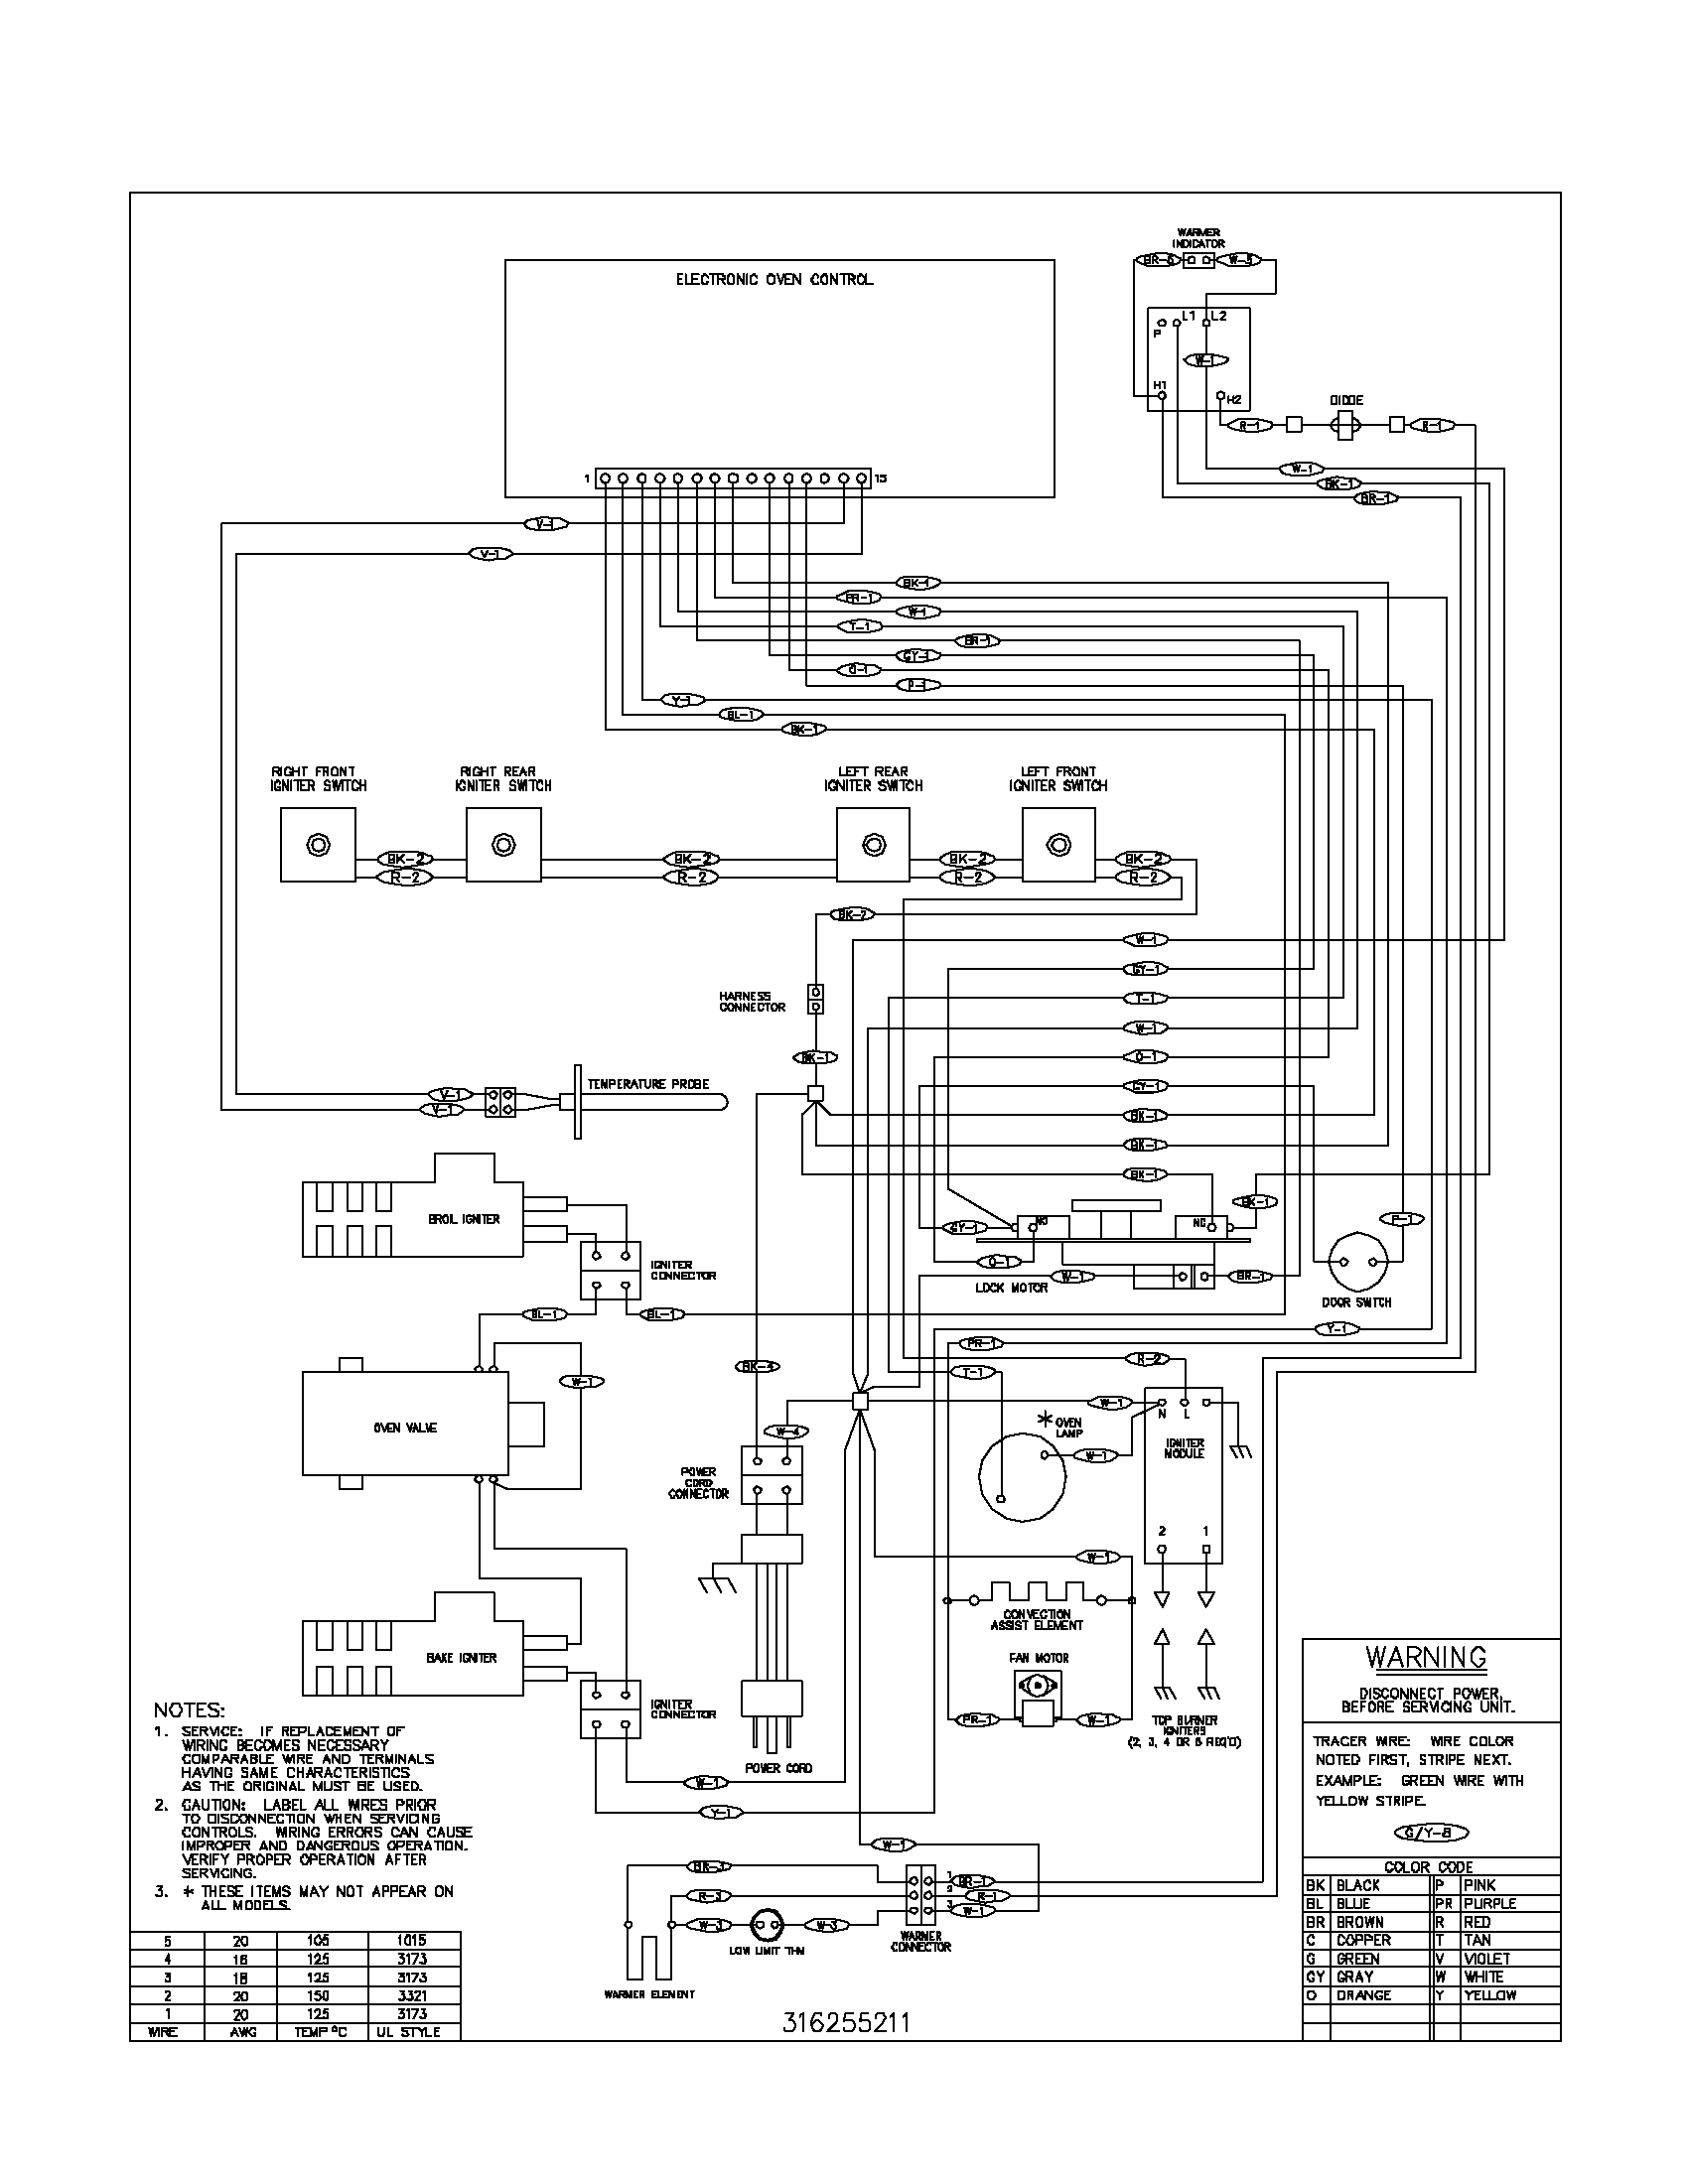 wiring diagram parts ed25dqxbw00 whirlpool refrigerator wiring schematic ed25dqxbw00  at honlapkeszites.co